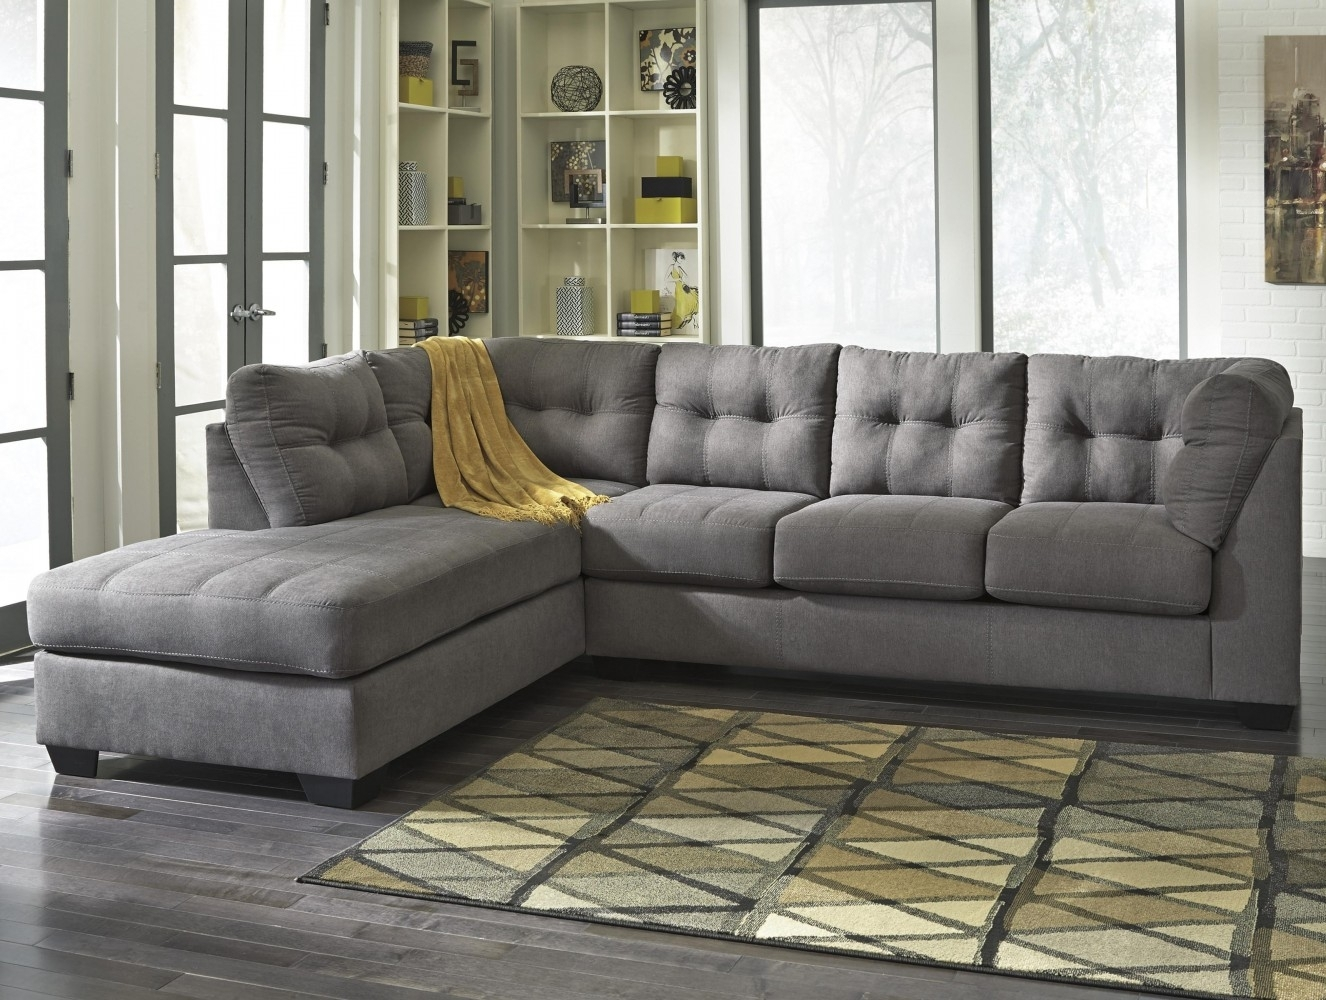 2 Piece Sectional Sofa Canada | Baci Living Room intended for Josephine 2 Piece Sectionals With Raf Sofa